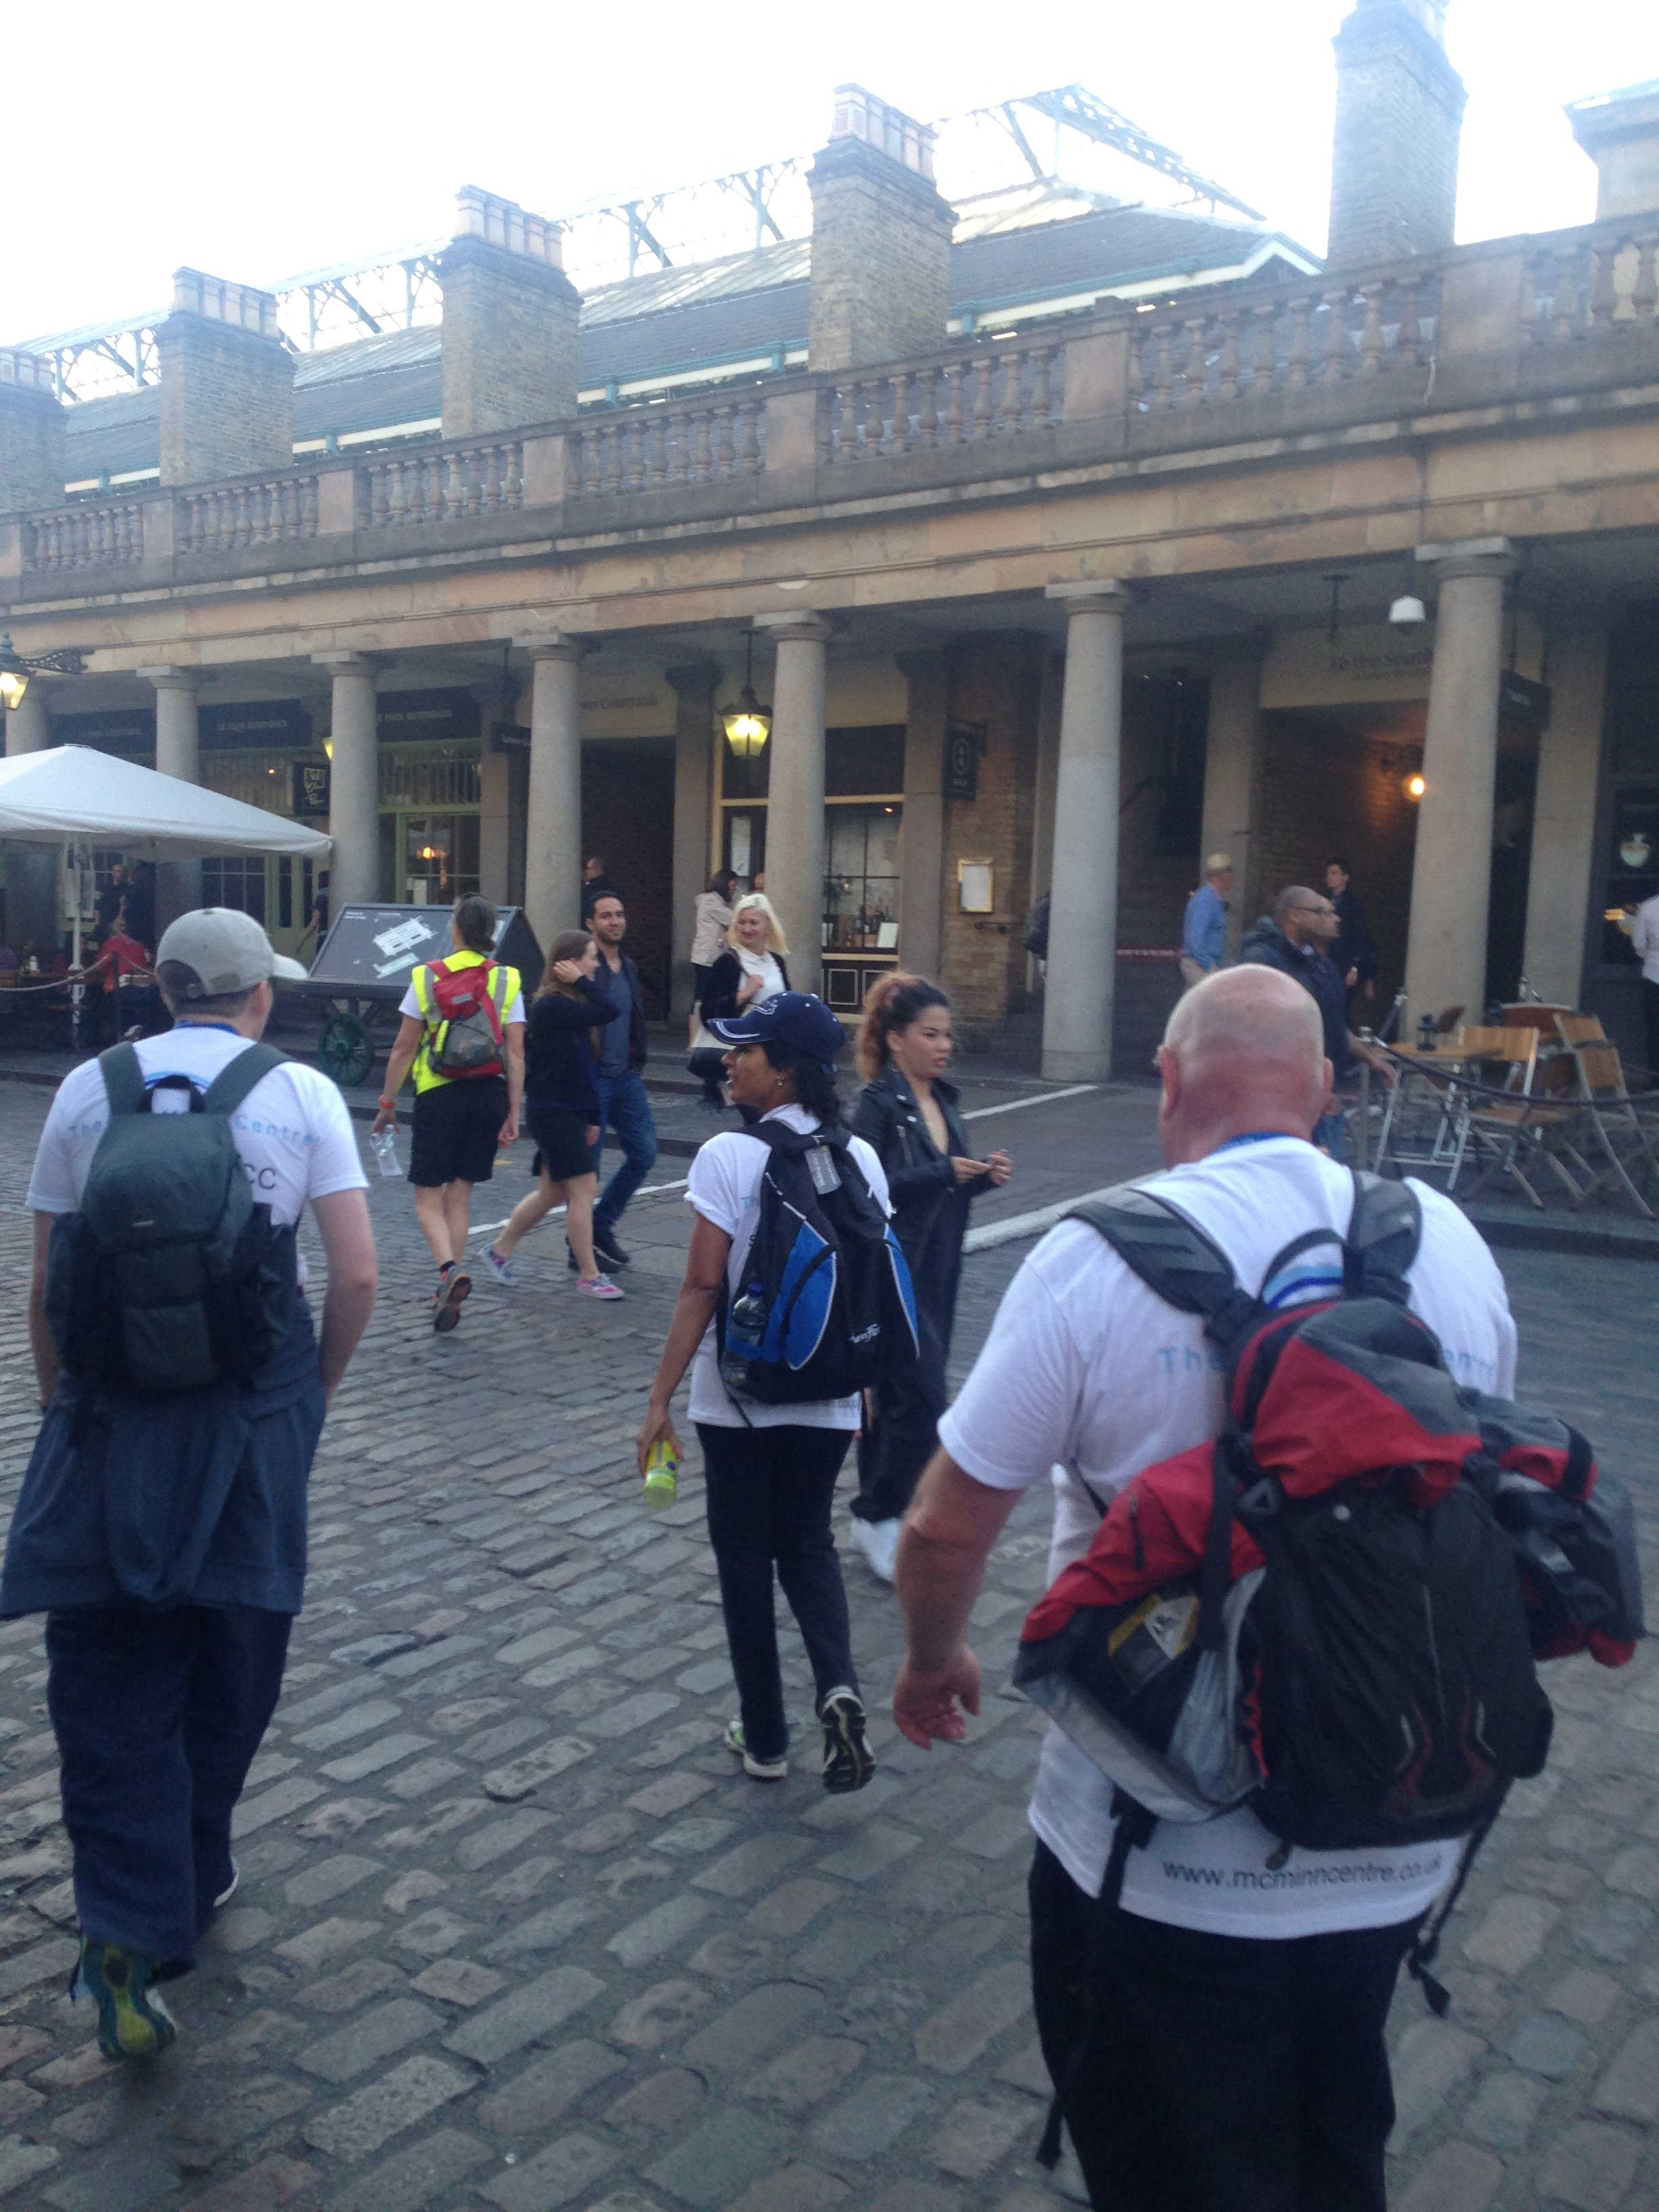 Arriving at Covent Garden